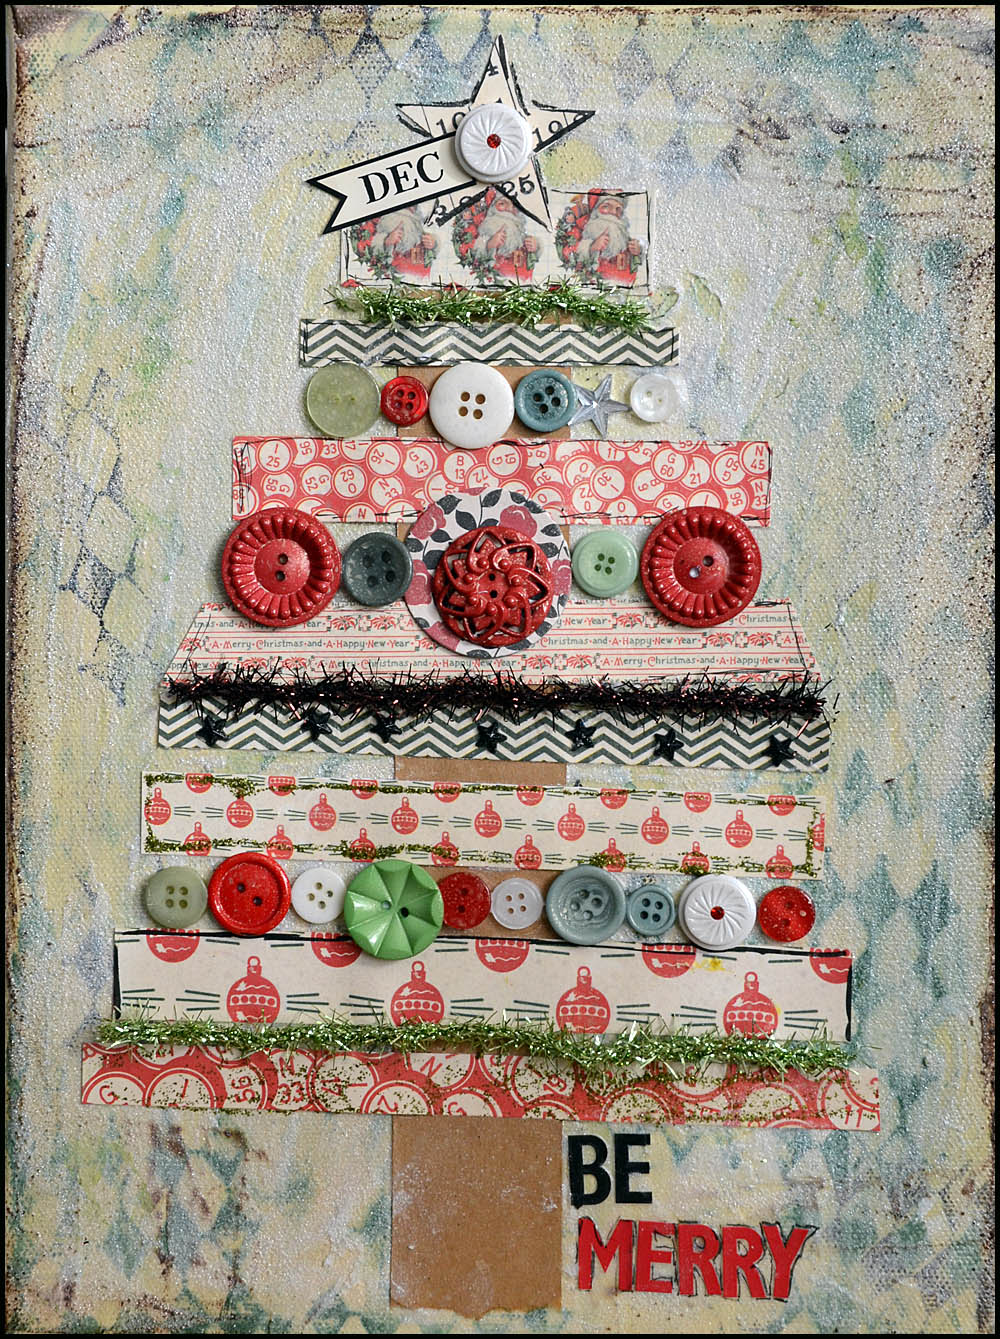 Jbs inspiration quot be merry christmas canvas from may flaum